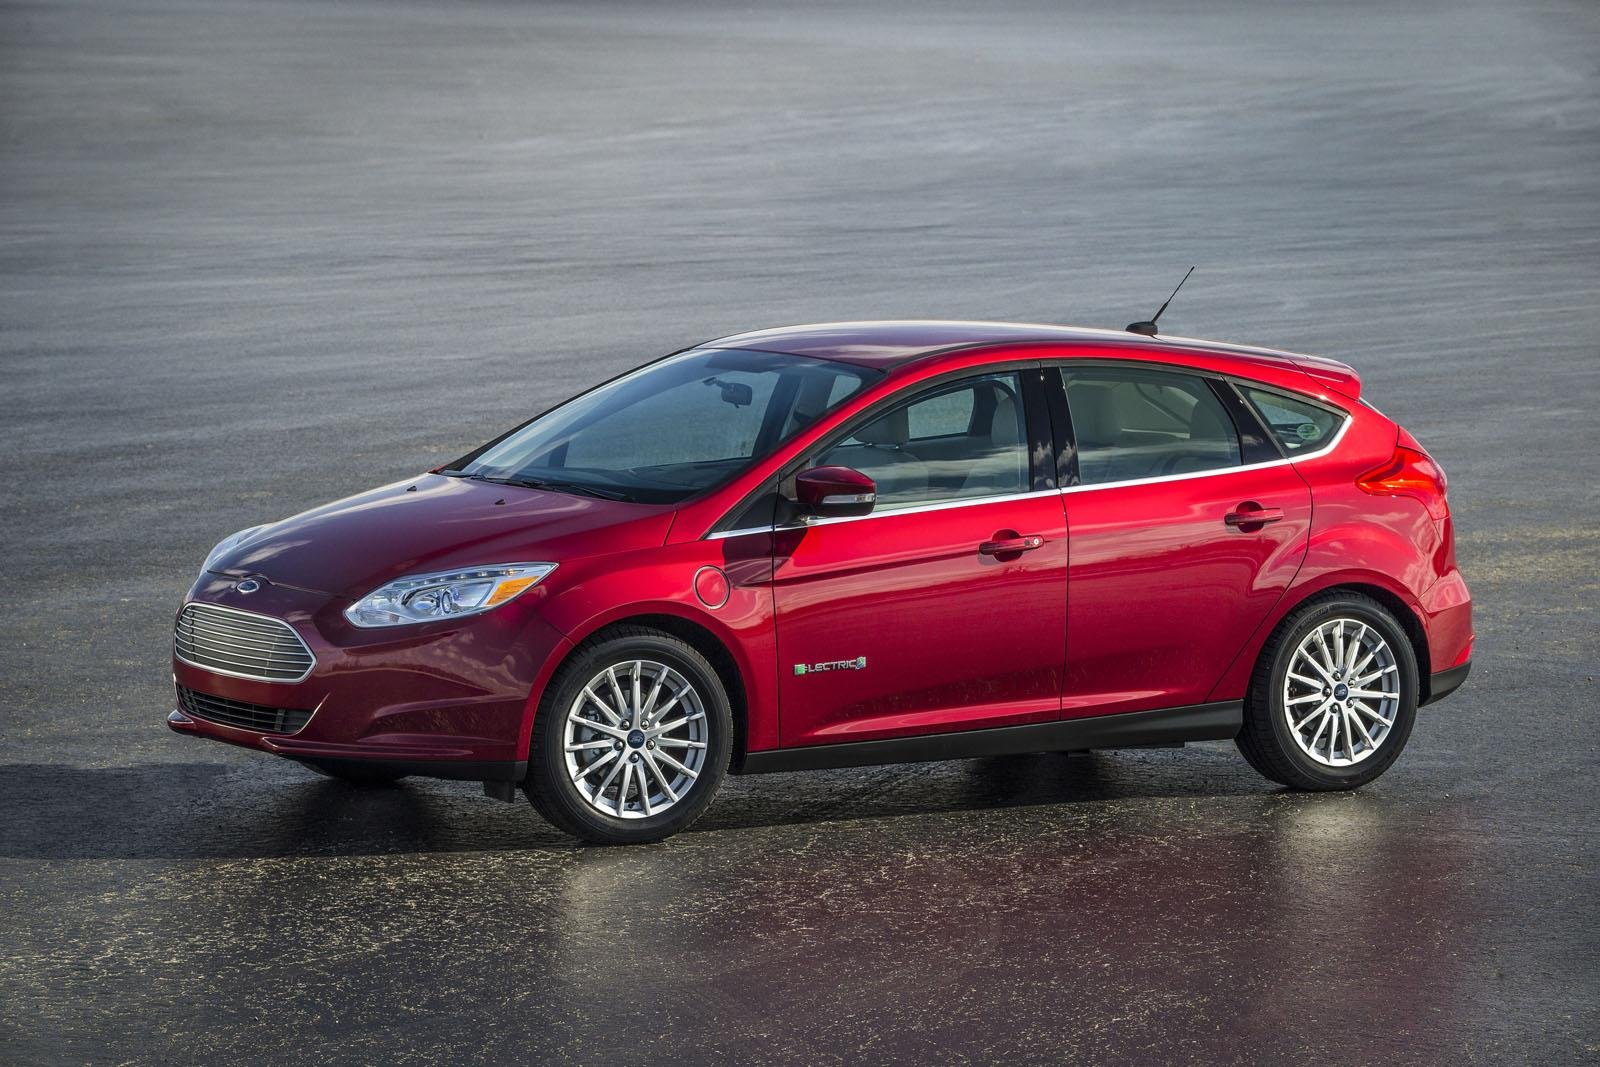 New Ford Focus Electric Confirmed To Be 6 000 Cheaper